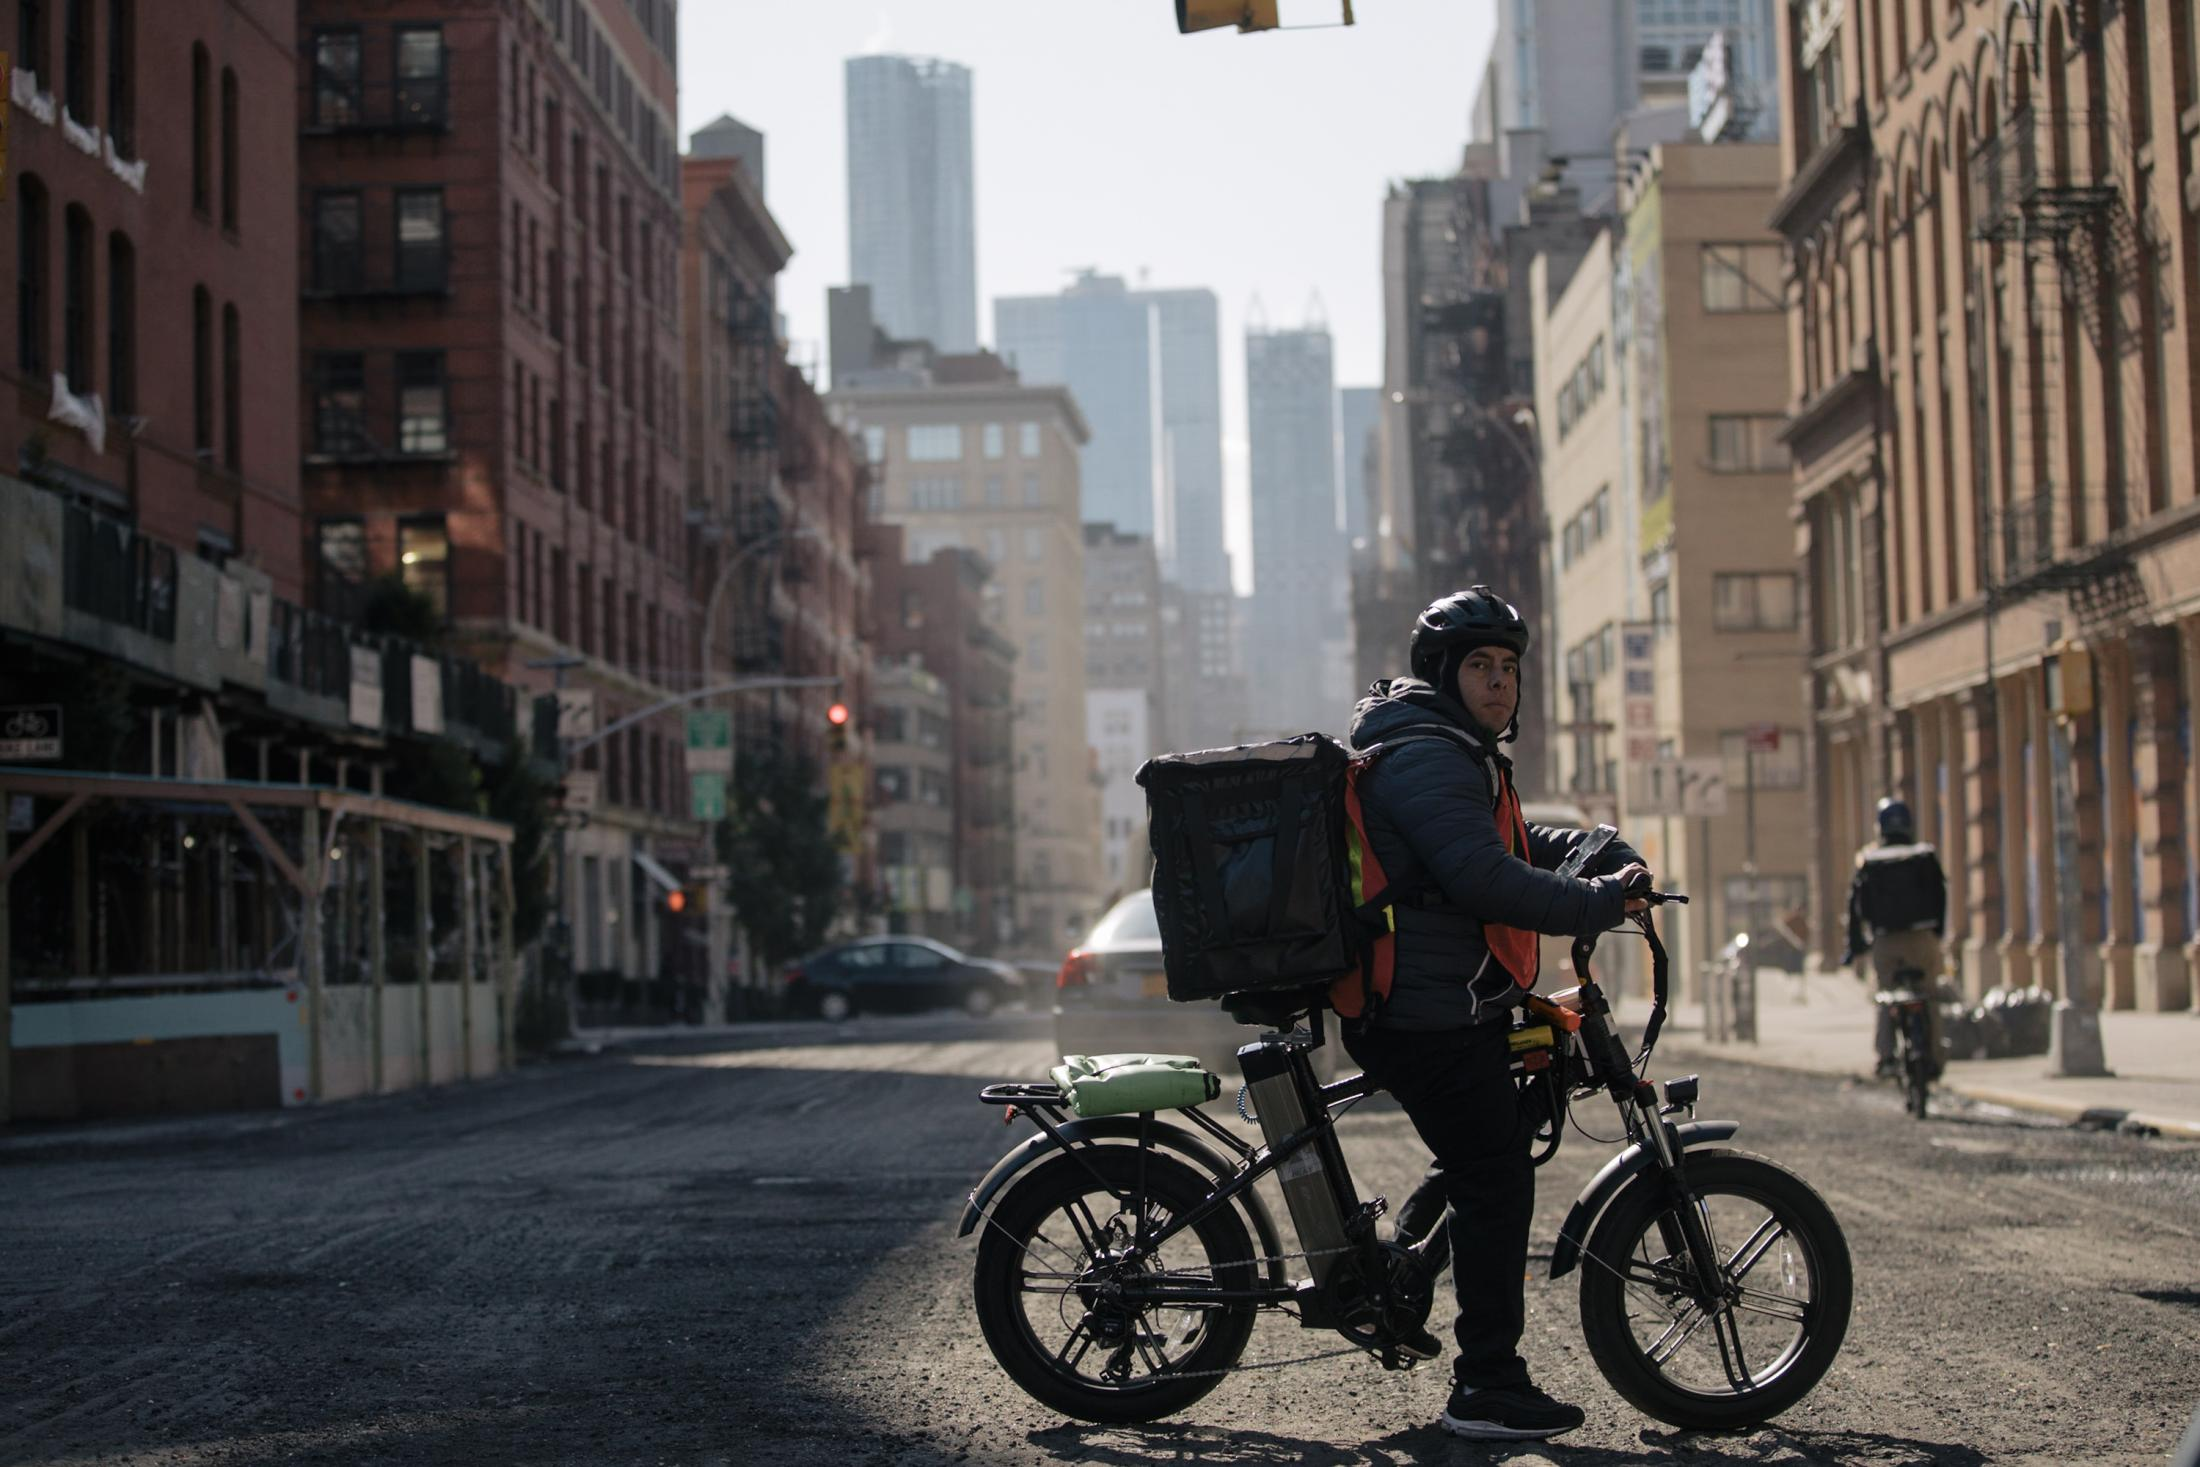 New York City, New York — October 31, 2020: As the morning sun makes it way over Manhattan, Sergio Ajche attempts to keep warm by moving about on Lafayette Street and Broom Street near Lt. Petrosino Square as he waits for deliveries. Since early March, the complexities of COVID-19 has shed light on the various obstacles in the gig economy, from wage theft to bare-bones wages, leading many to voice their frustrations to the growing mistreatment of this invisible army. CREDIT: José A. Alvarado Jr. for The New York Times